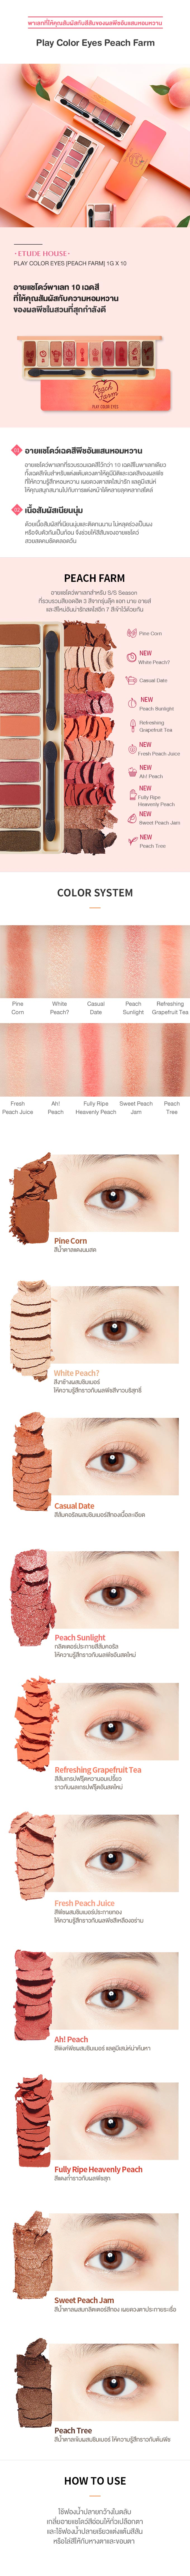 TH1_Description_Play Color Eyes_Peach Farm